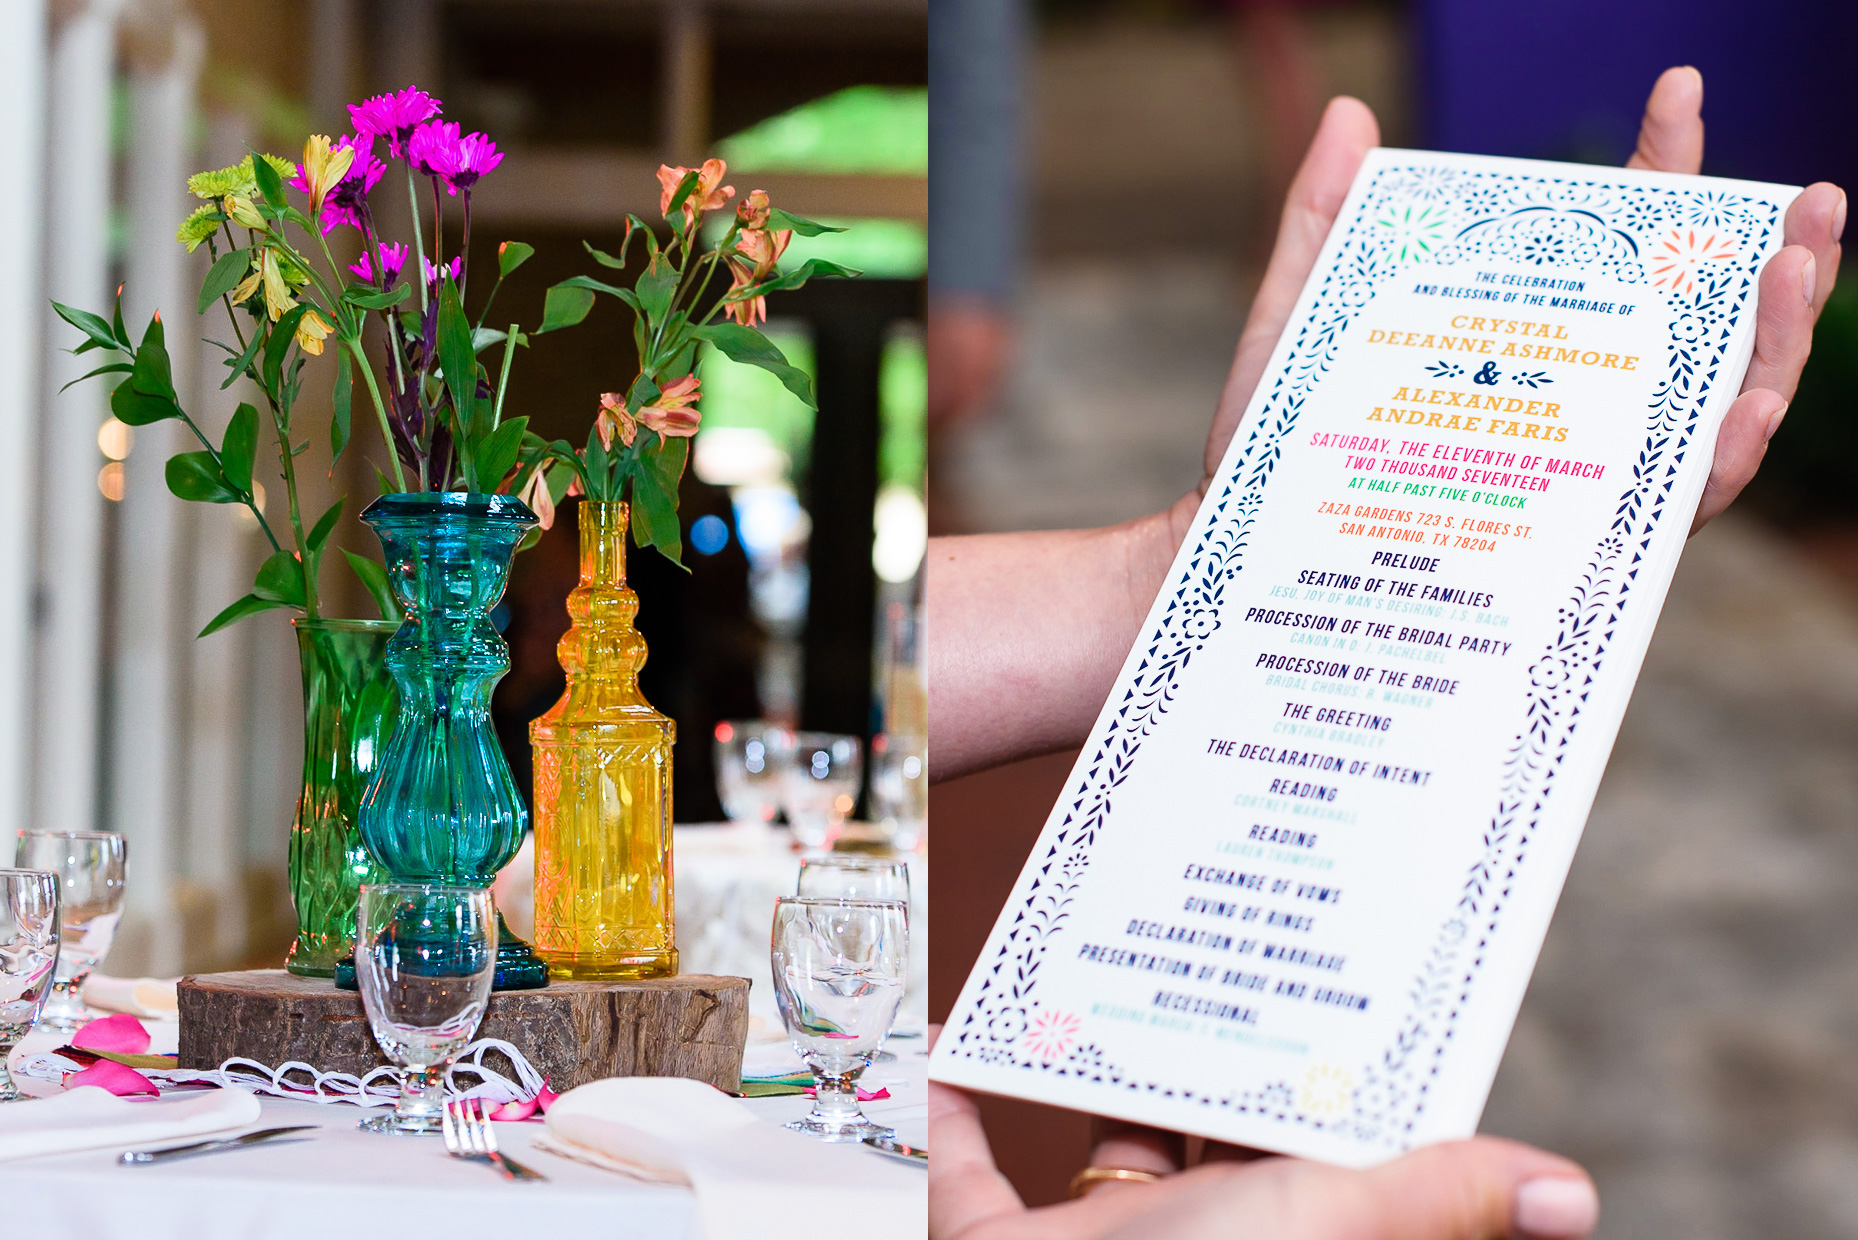 ceremony-table-setting-vase-flower-colorful-austin-wedding-photographer